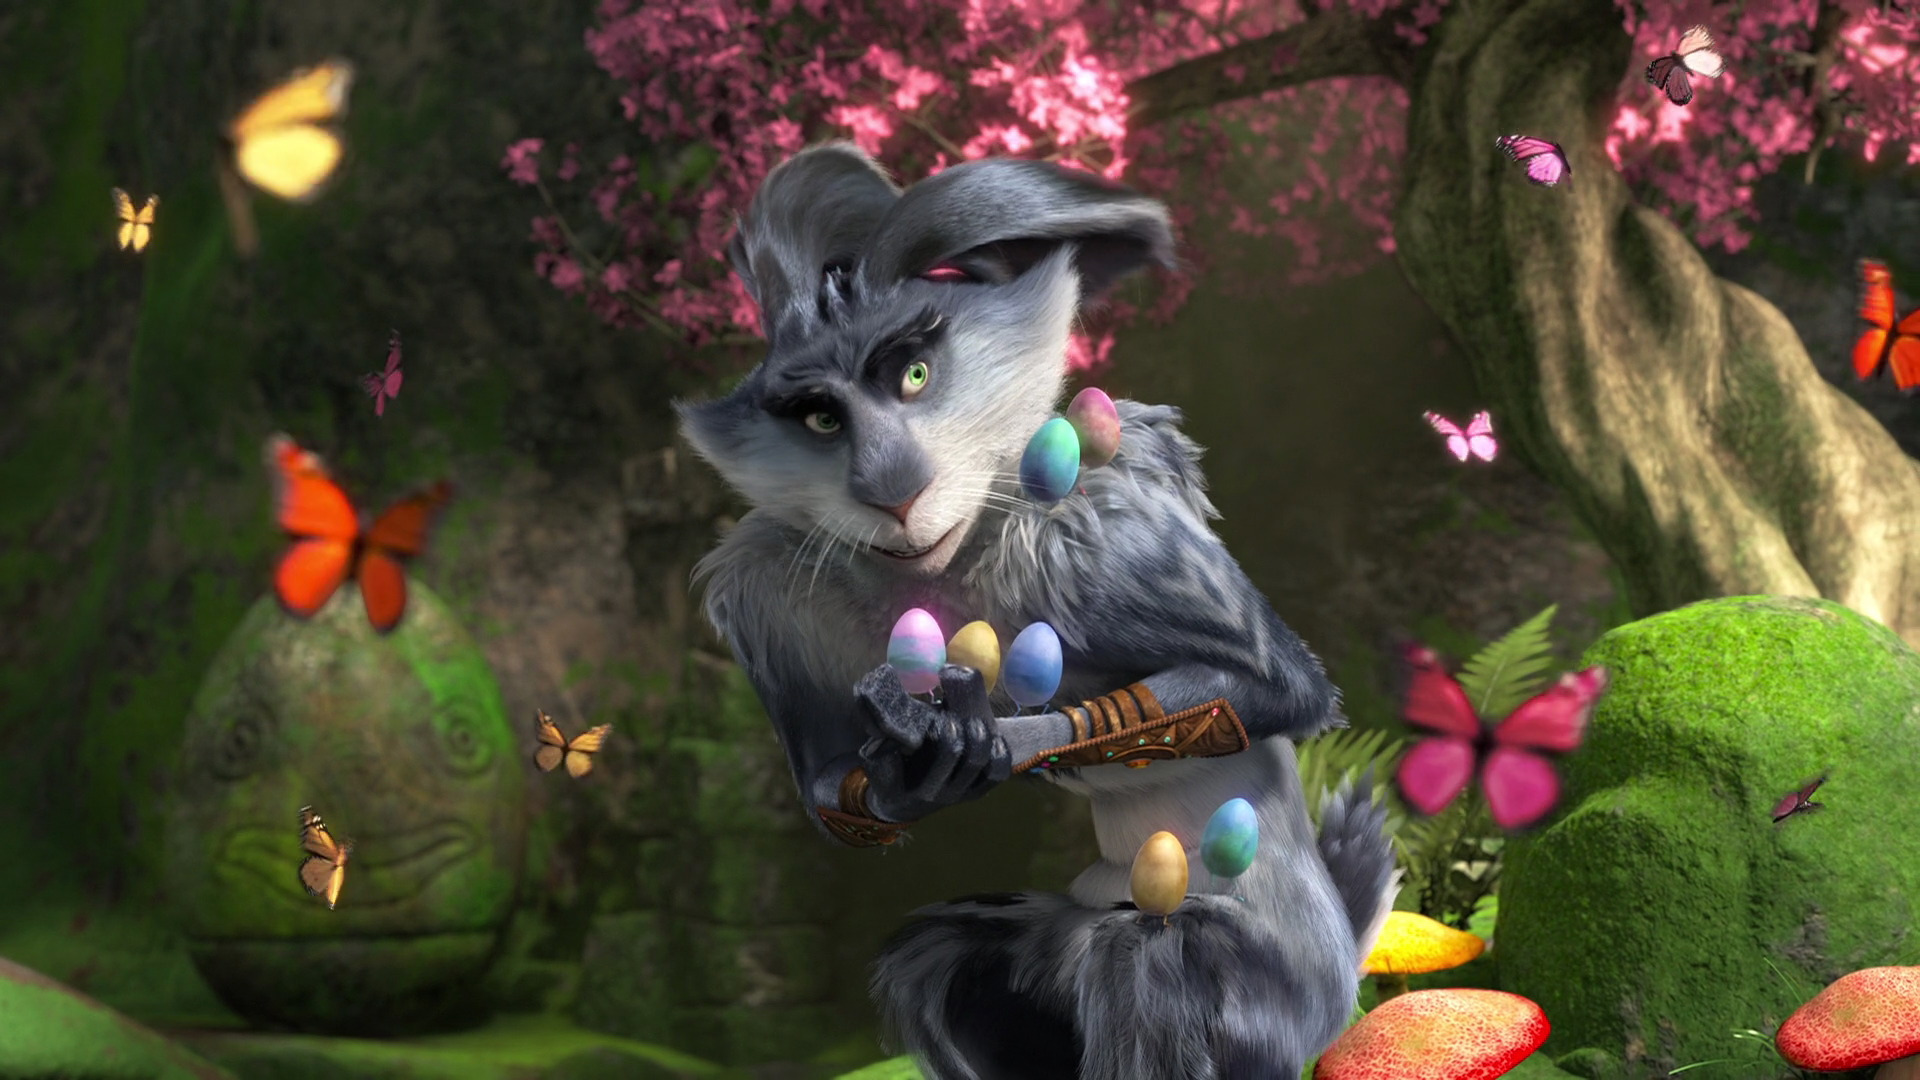 Rise of the guardians easter bunny wallpaper pc rise of the rise of the guardians easter bunny wallpaper thecheapjerseys Image collections